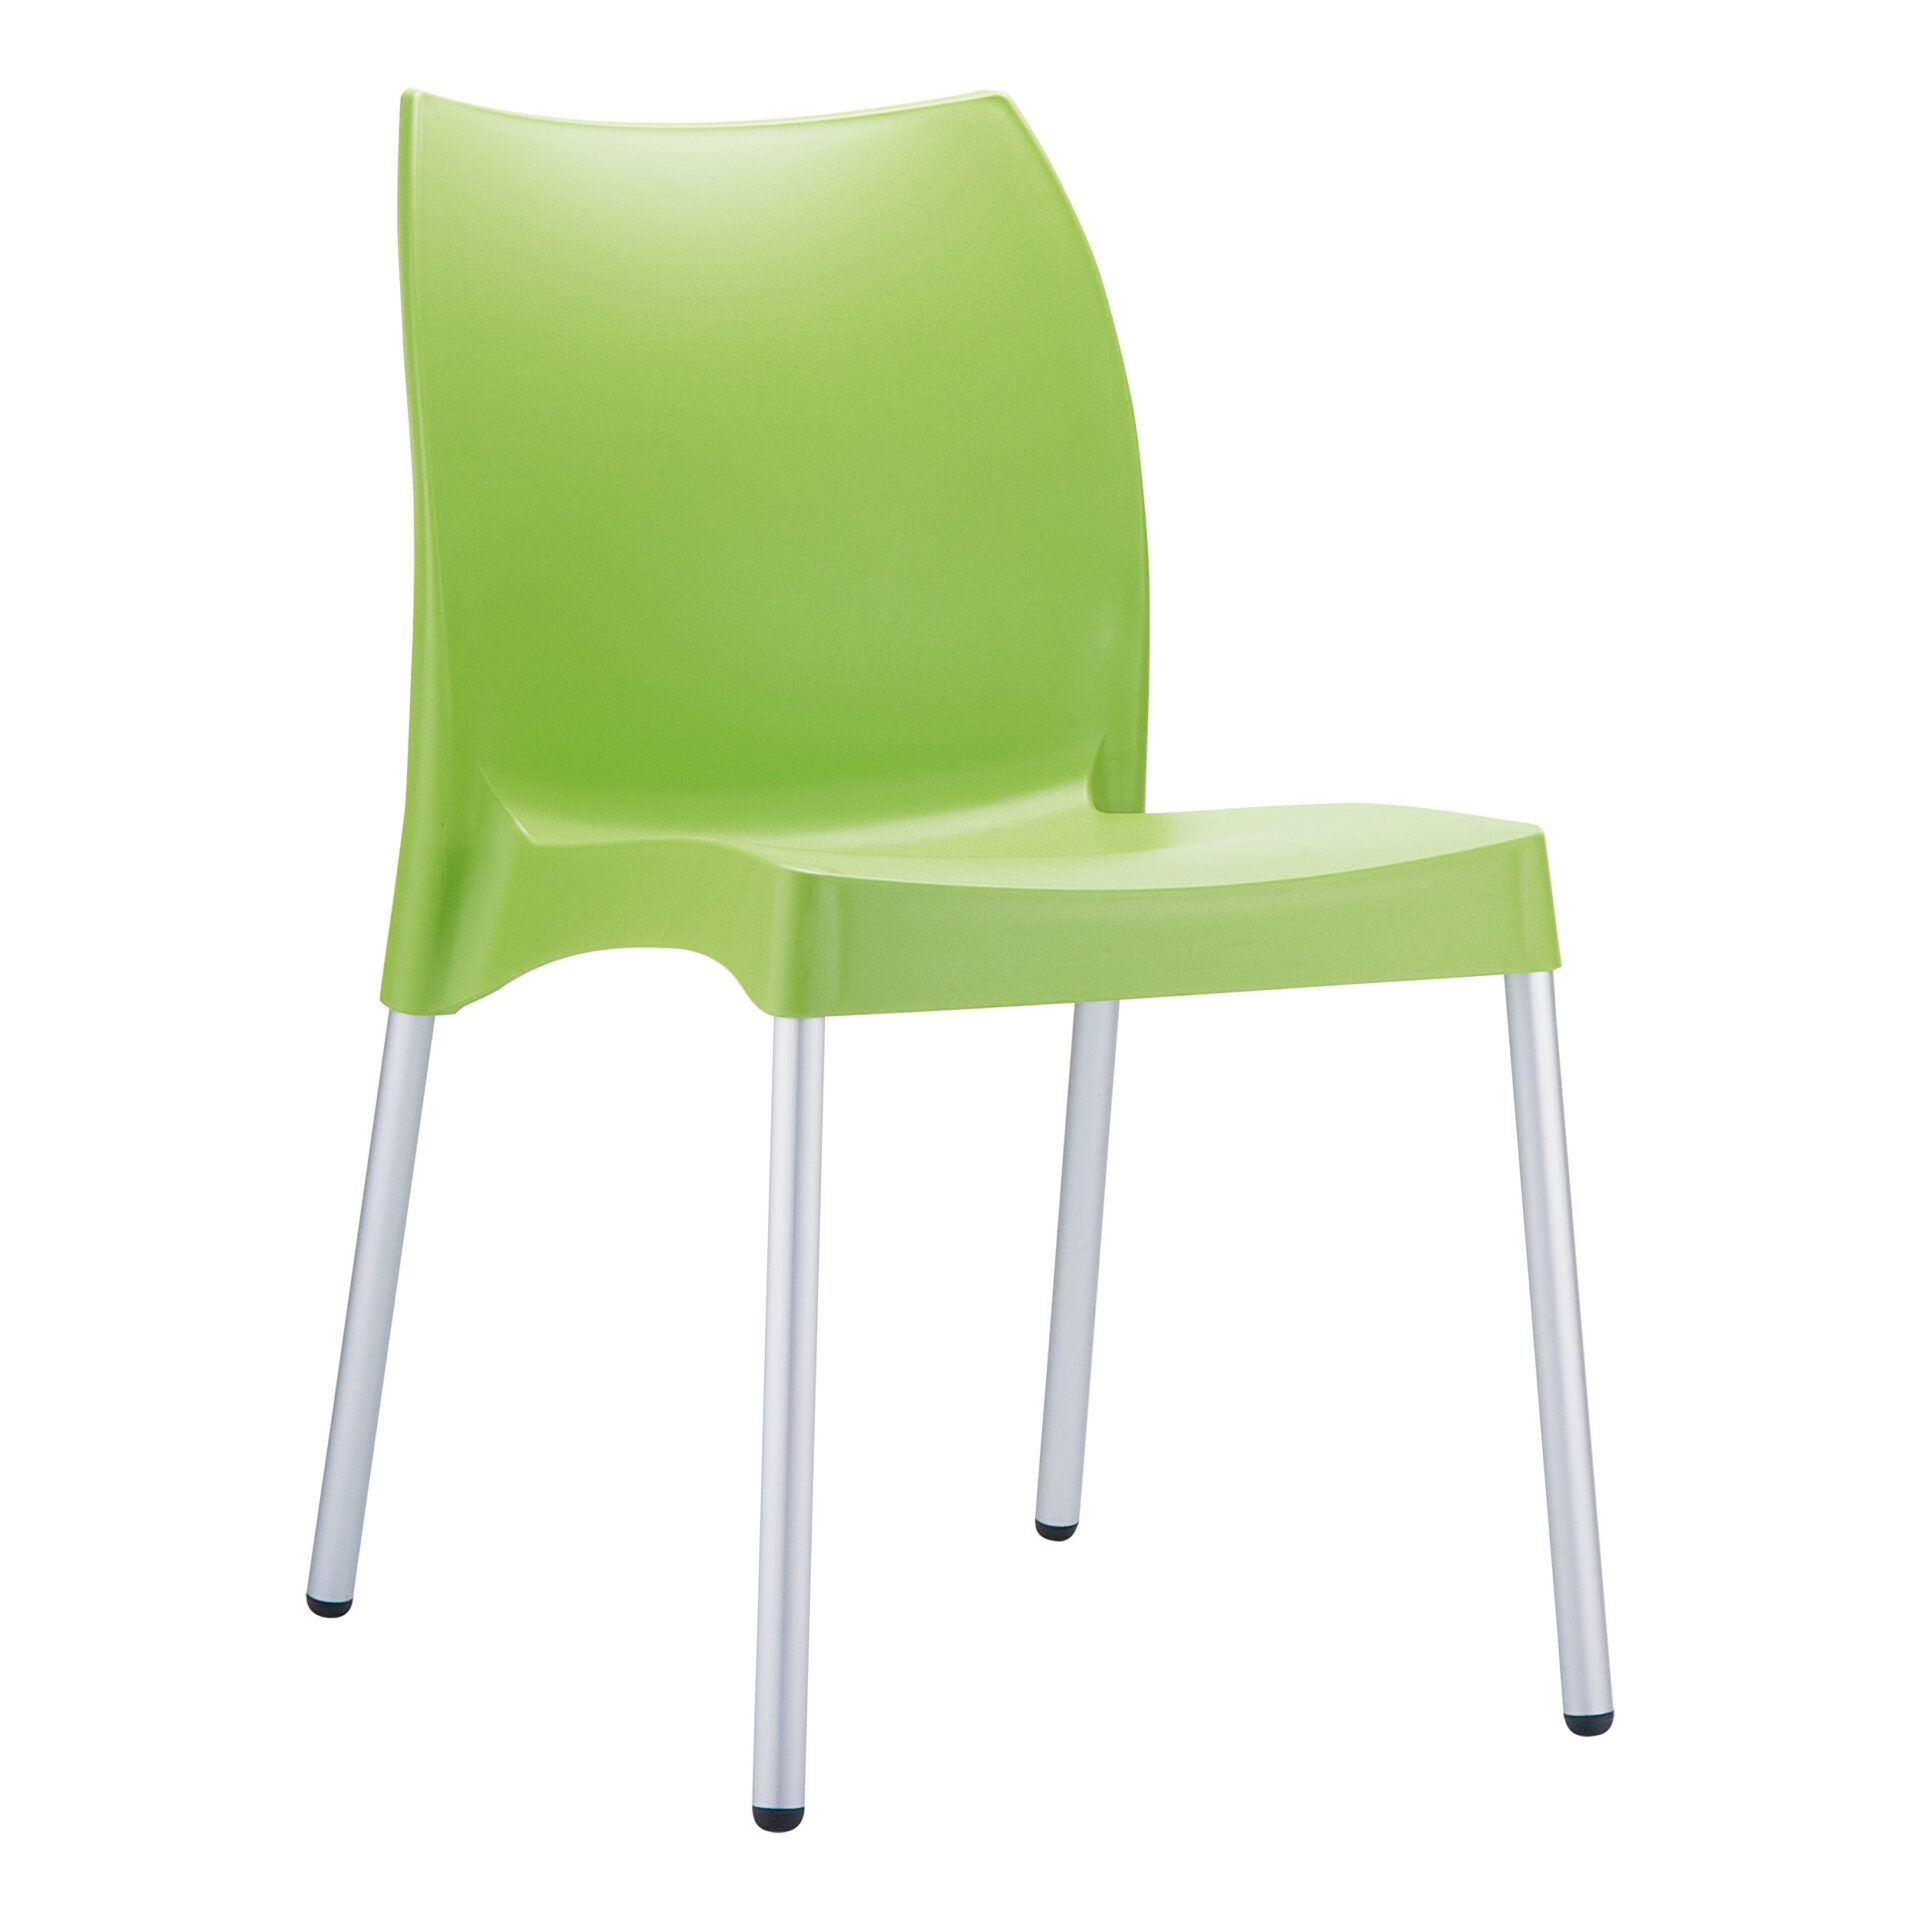 commercial outdoor hospitality seating vita chair green front side